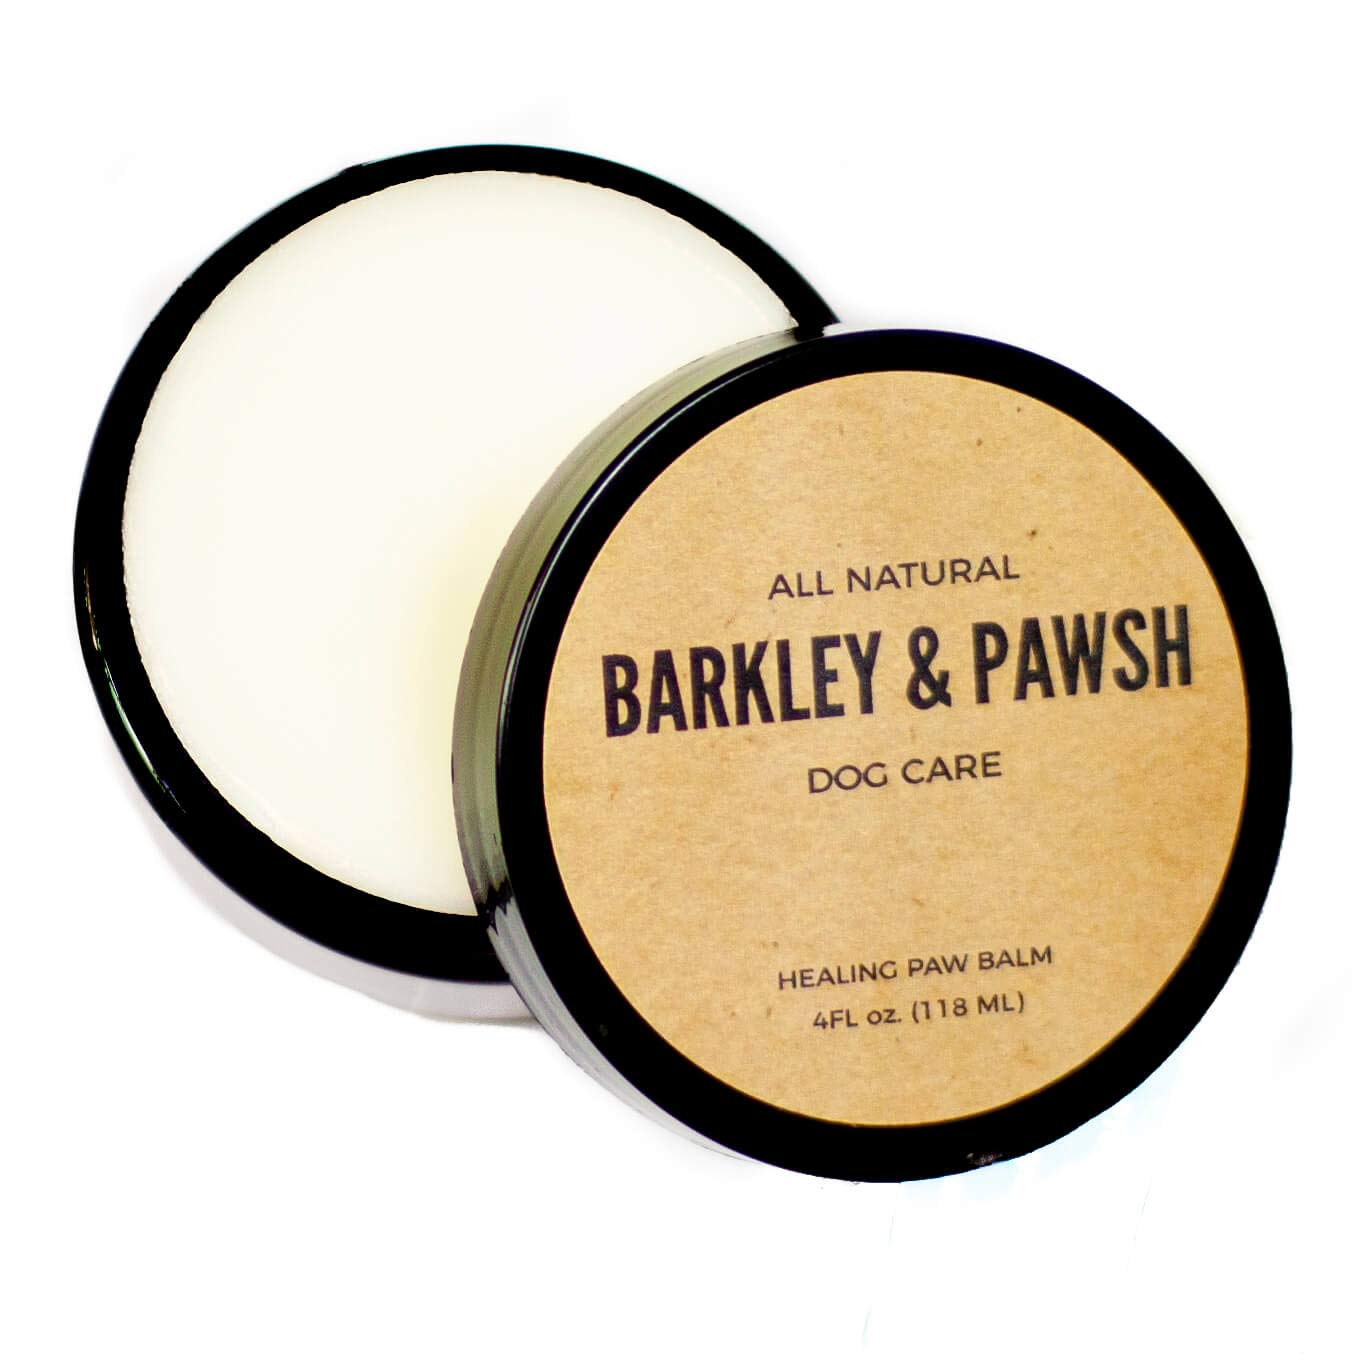 100% Natural Dog Paw Ointment for Dry, Cracked, Flaky Pads | 4 fl oz, Puppy Safe Balm | Cruelty and Chemical Free | Made in The USA (4oz)